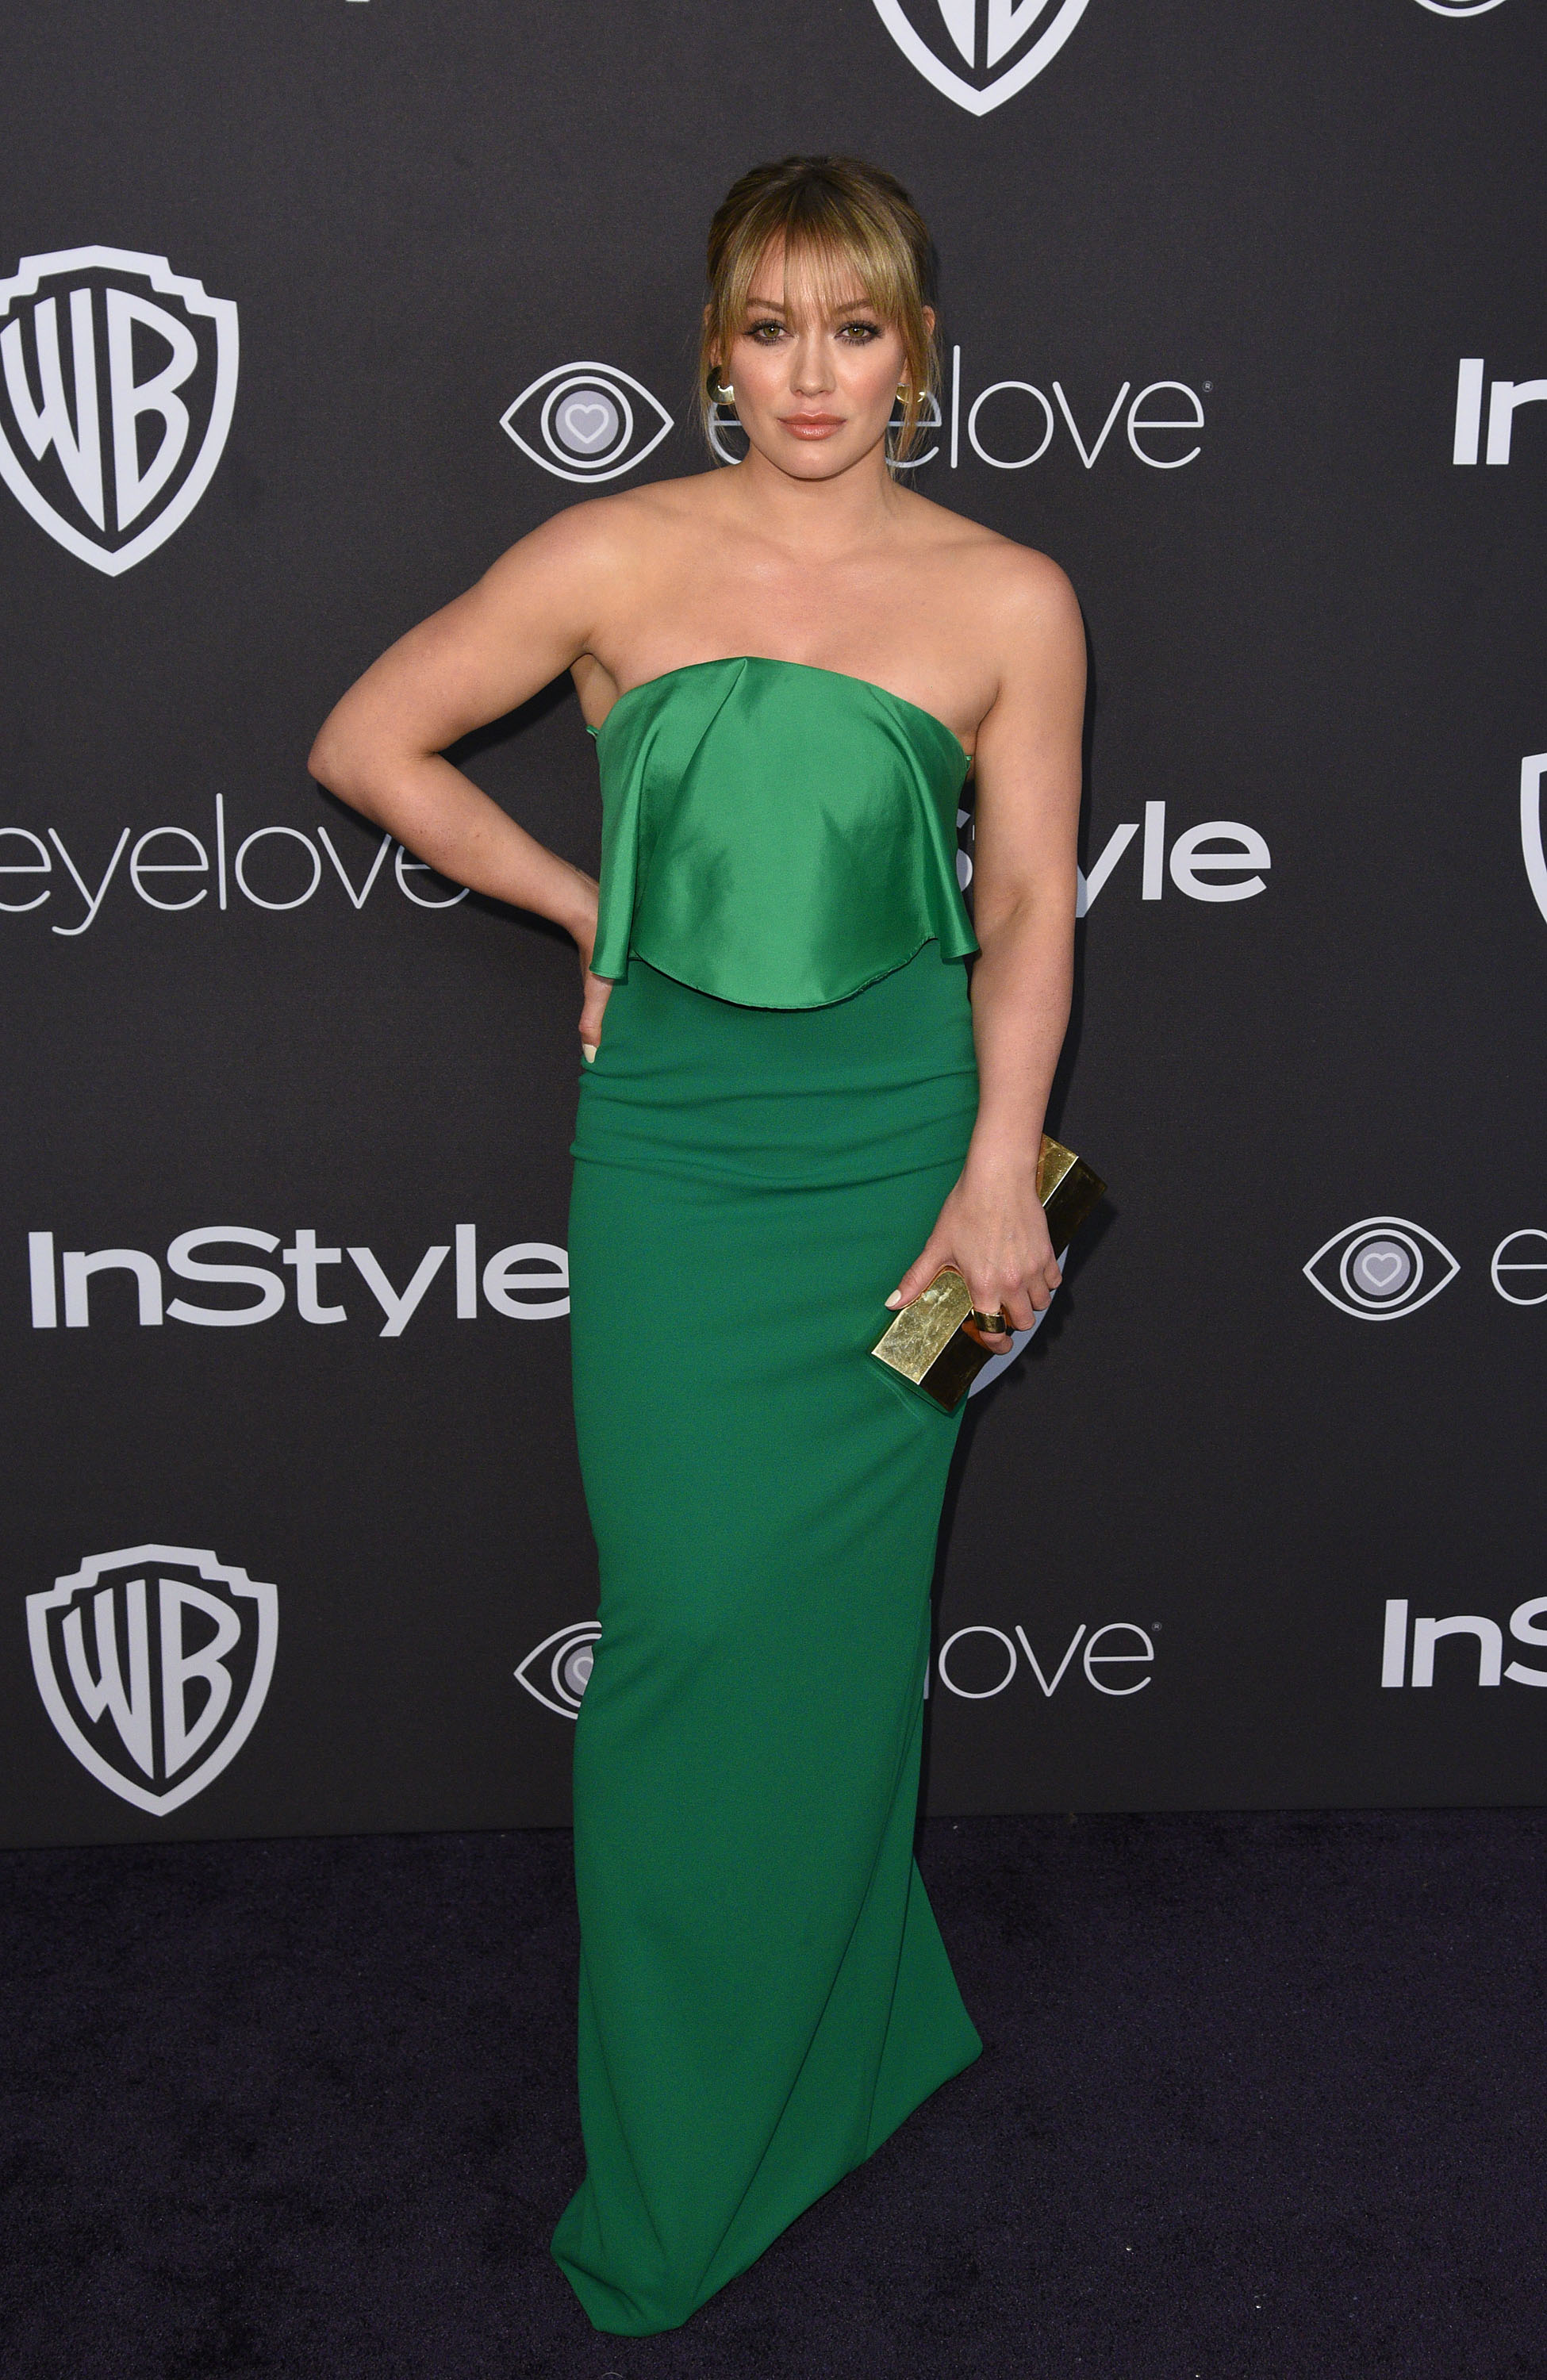 Hilary Duff Looked Like The Queen Of The Emerald City At